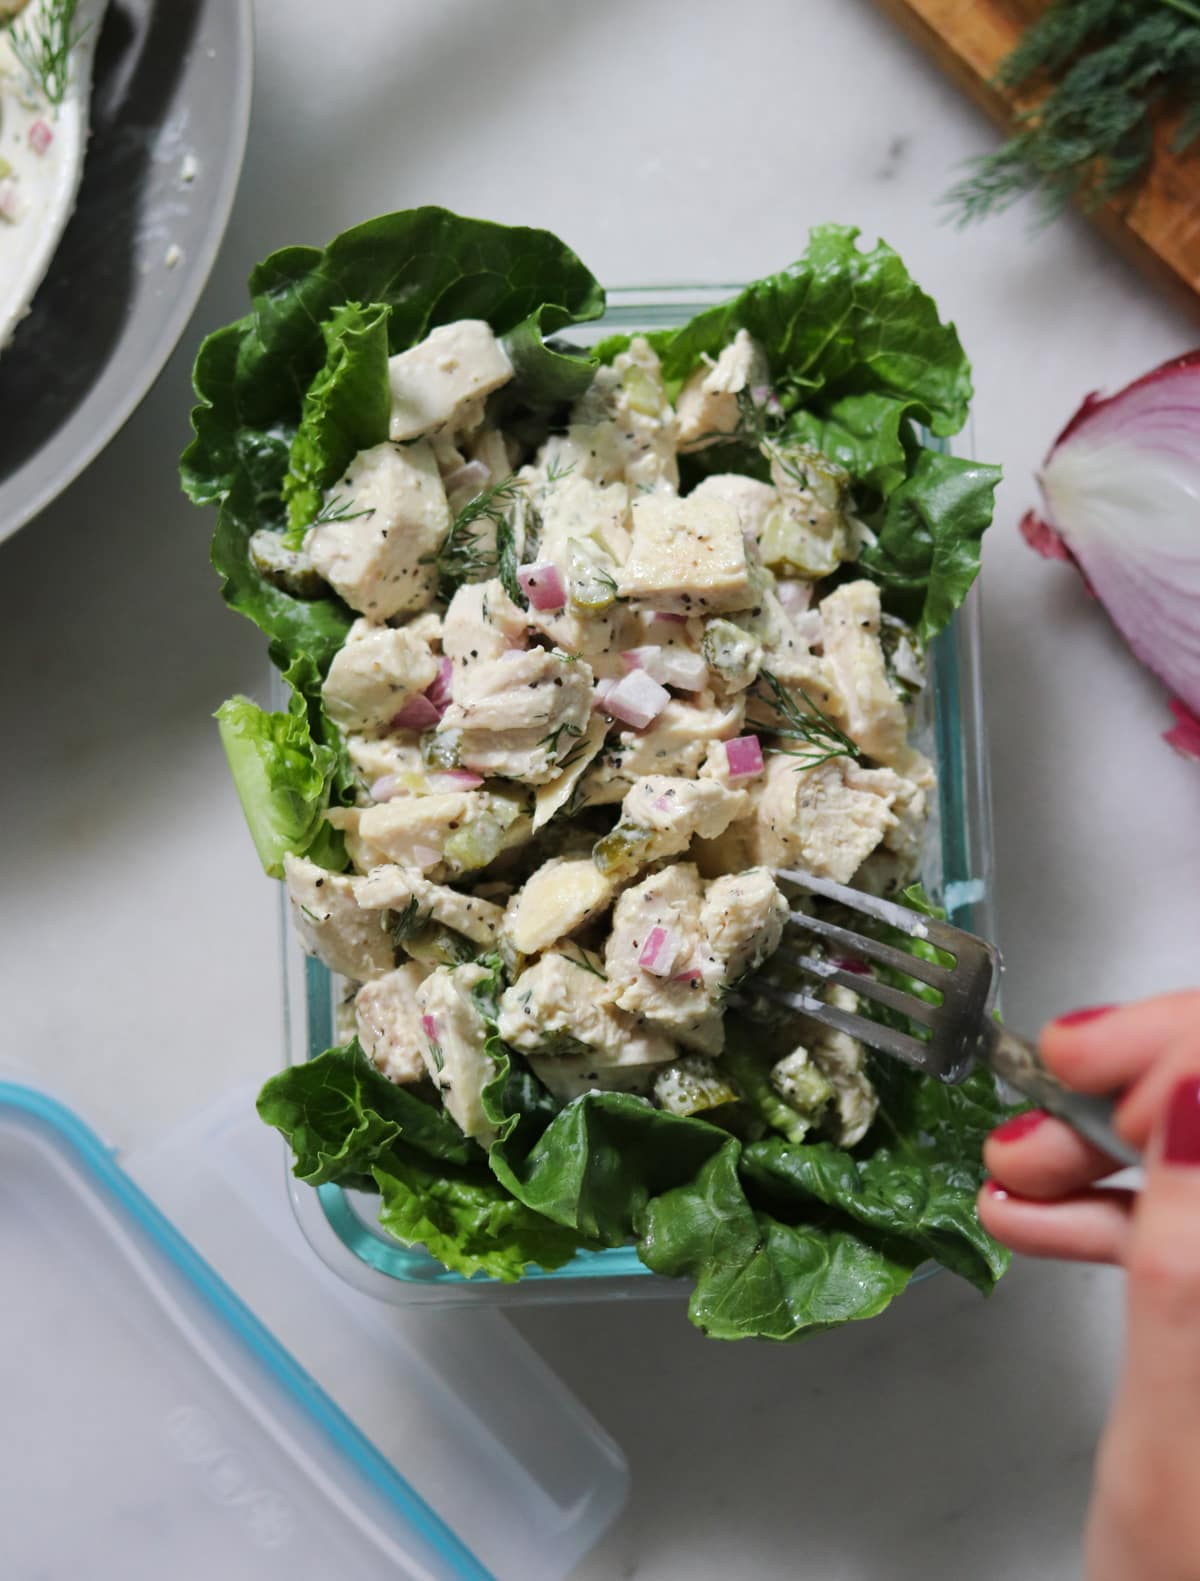 A small glass dish filled with romaine lettuce and topped with dill pickle chicken salad